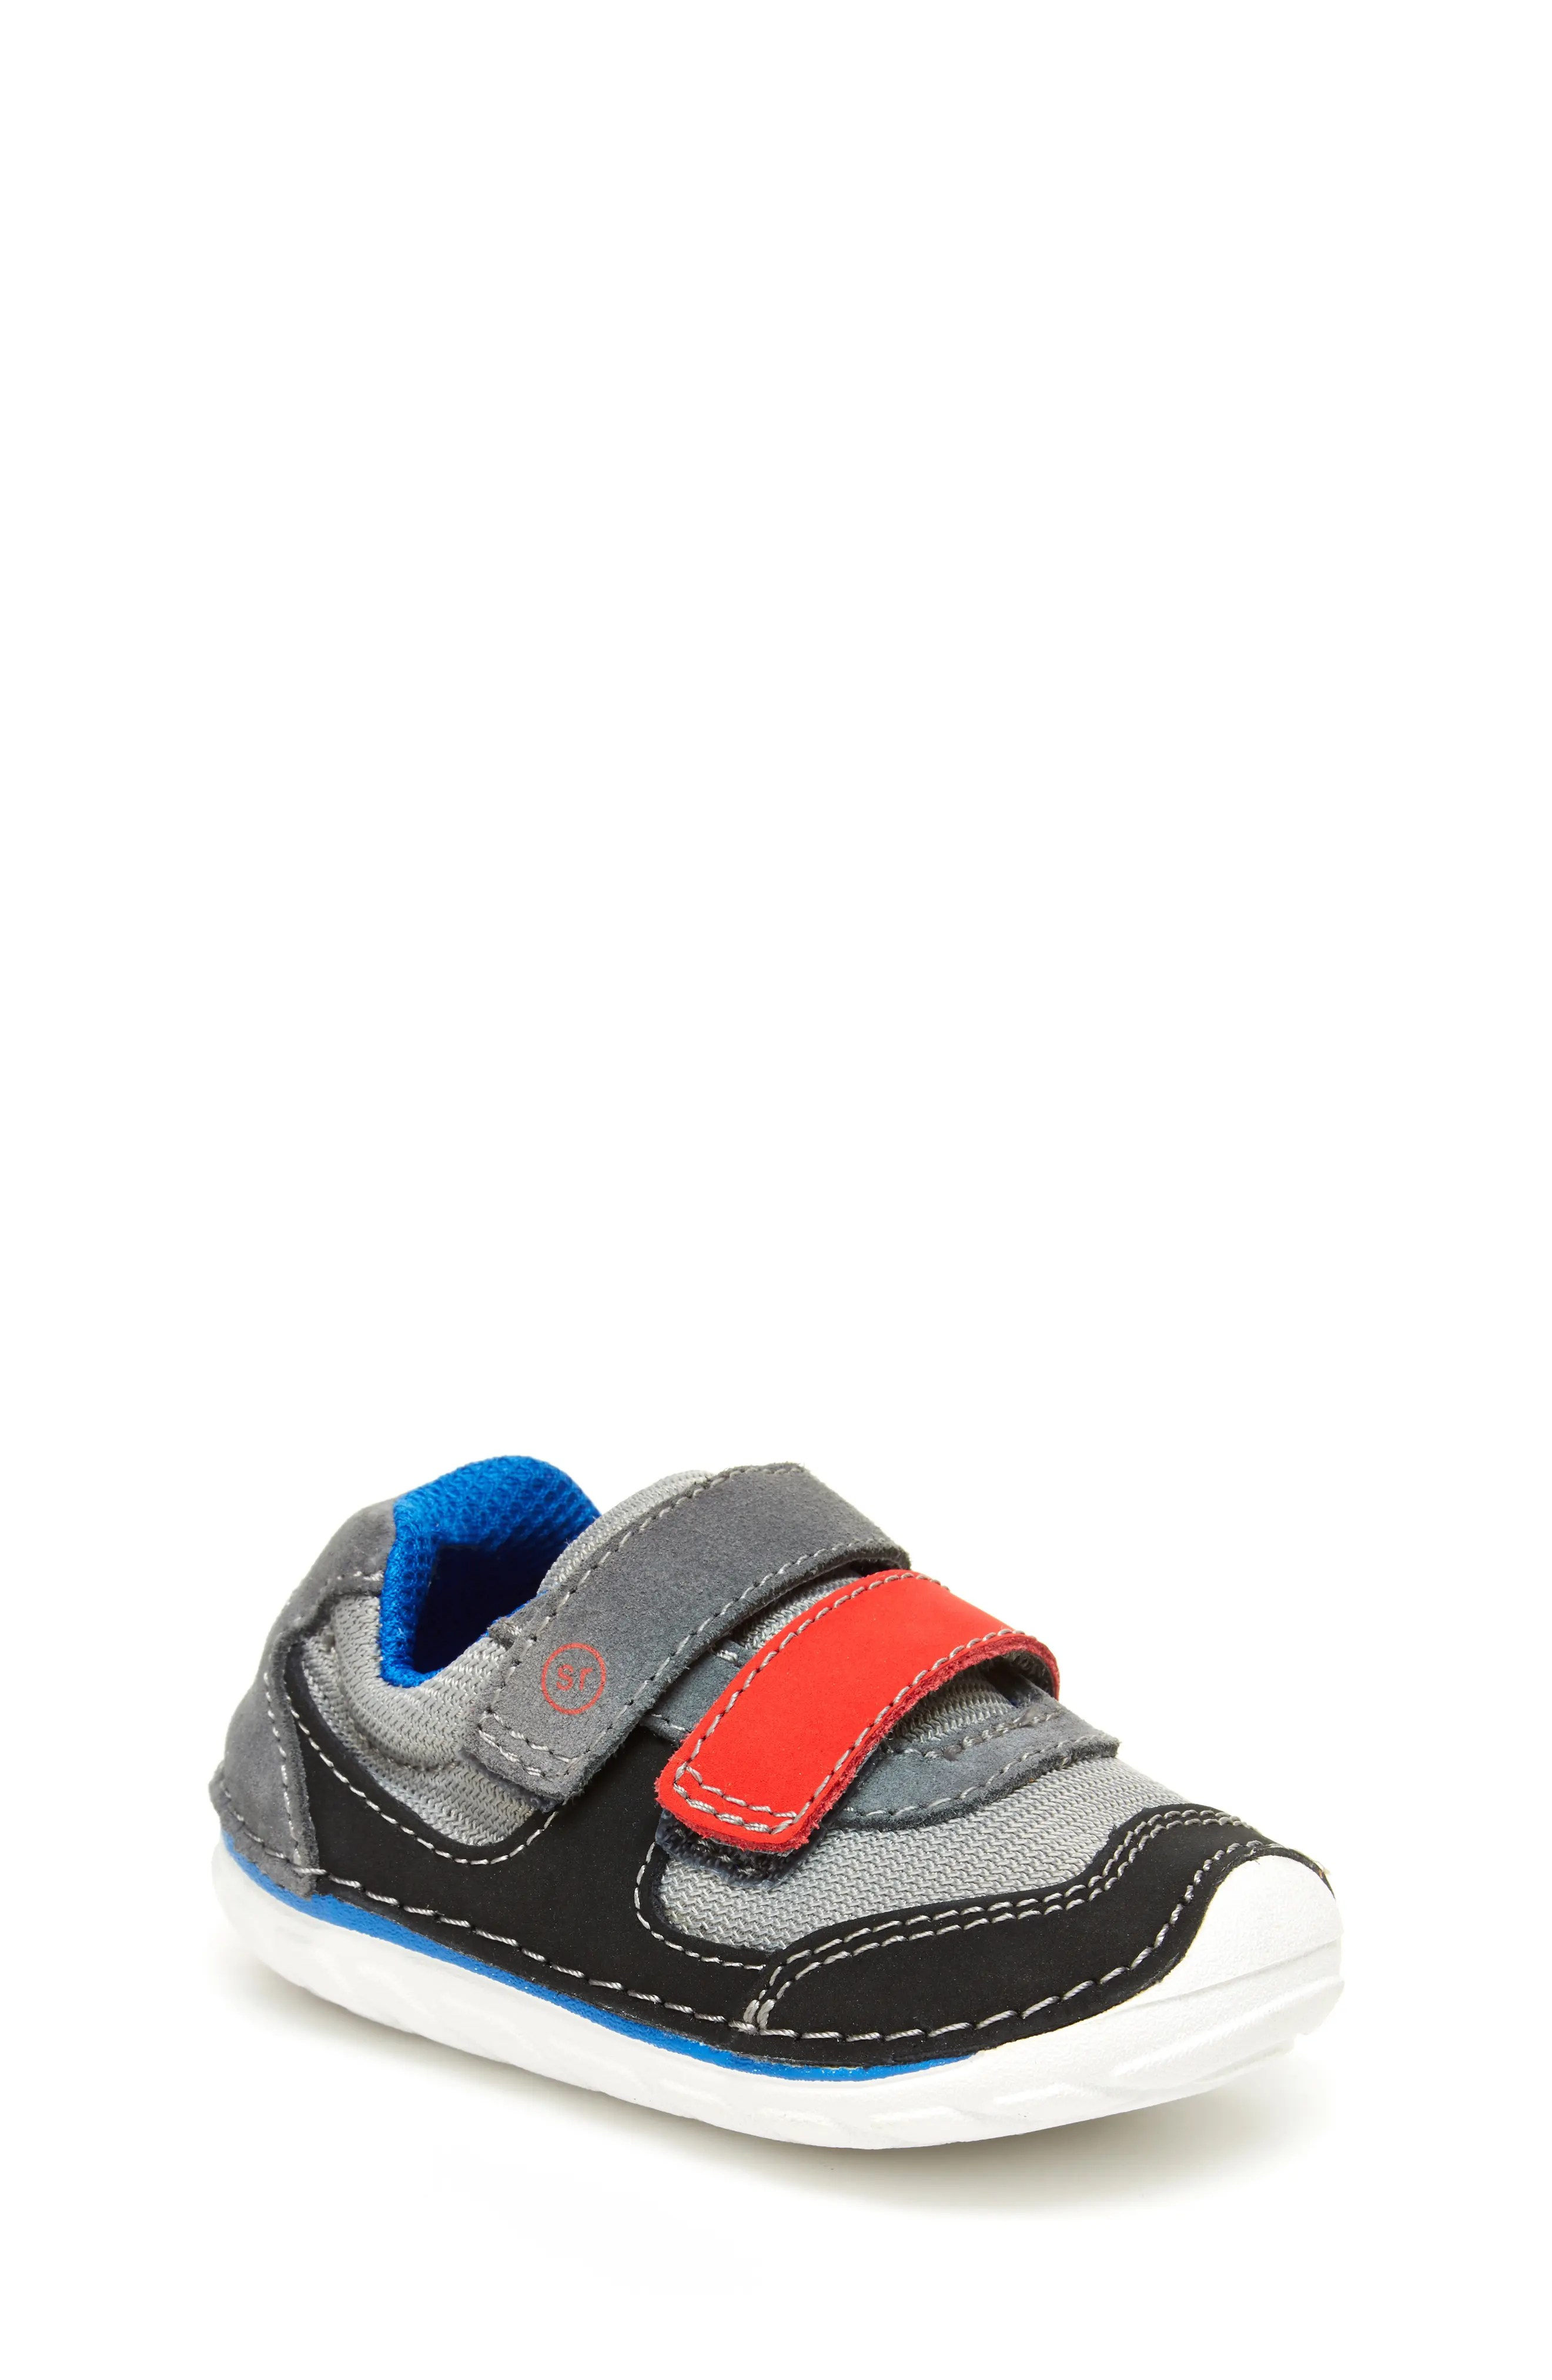 baby boys shoes nordstrom rack